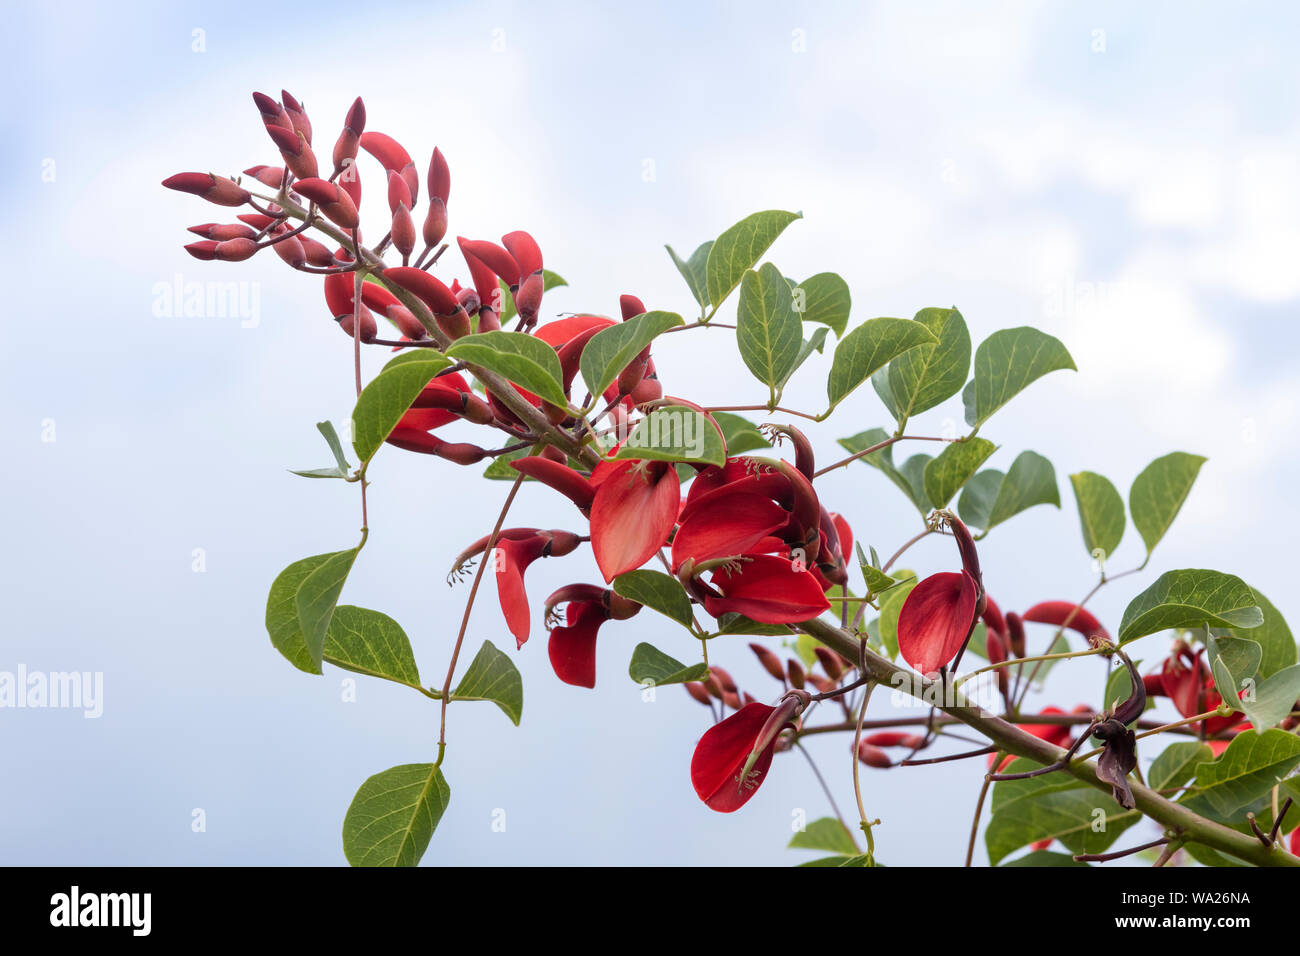 Waxy red flowers of  a flowering tree Erythrina crista-galli, also known as the cockspur coral tree. Stock Photo